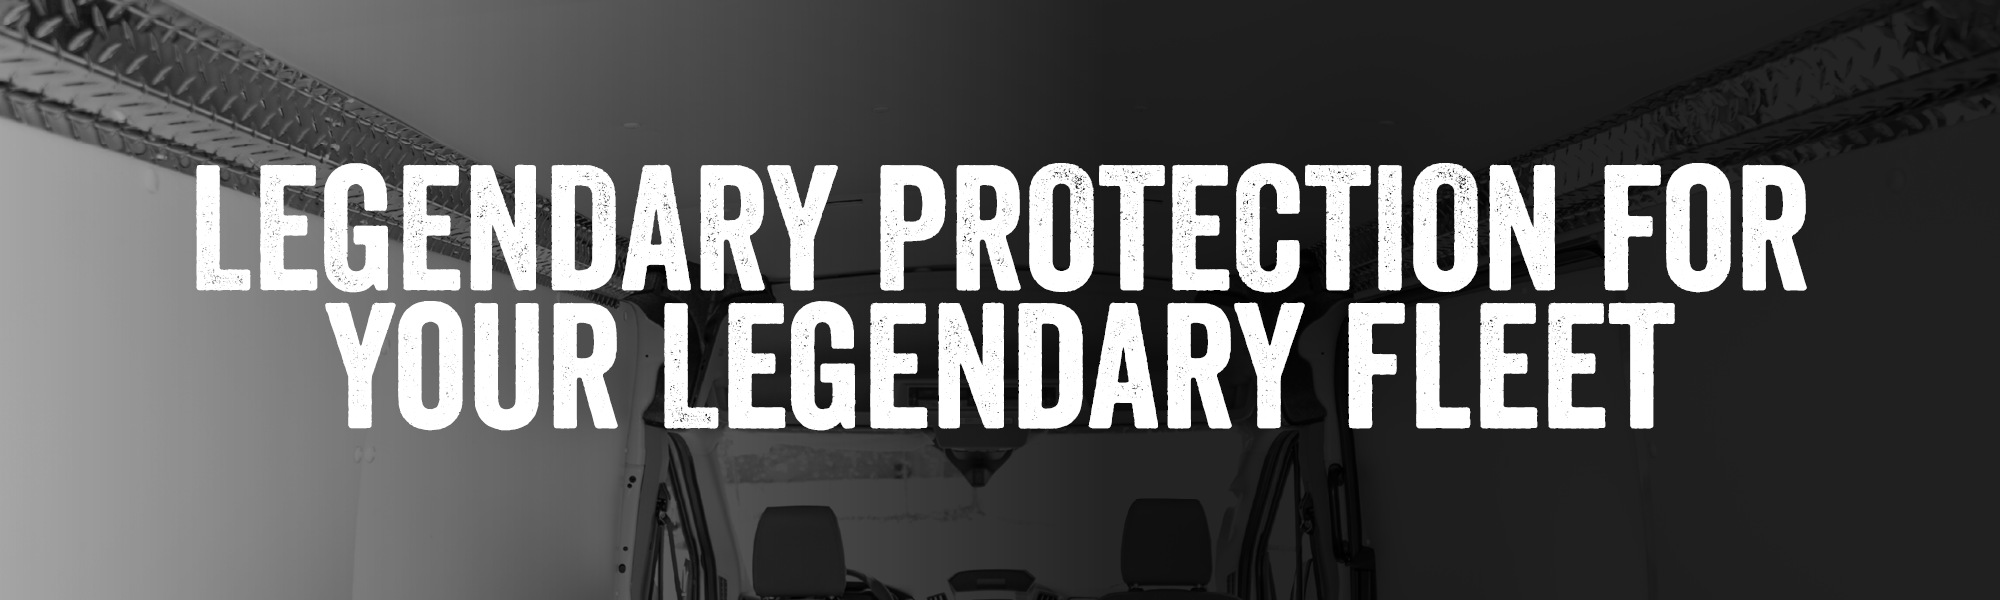 legendary protection for legendary fleet-1